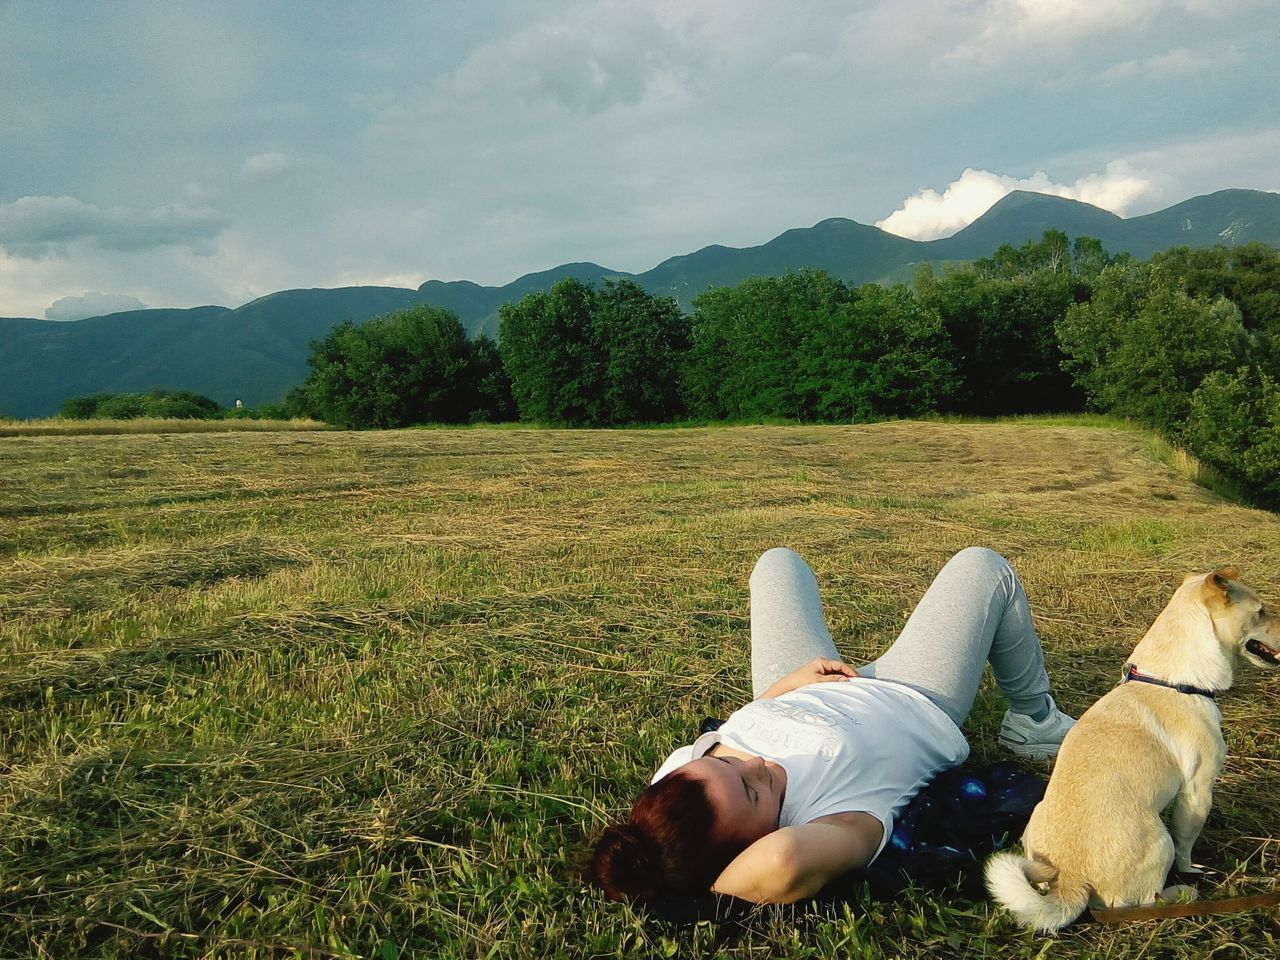 lying down, real people, mountain, tree, sky, grass, relaxation, day, field, sleeping, one person, casual clothing, nature, outdoors, growth, landscape, cloud - sky, full length, scenics, hands behind head, young women, young adult, beauty in nature, people